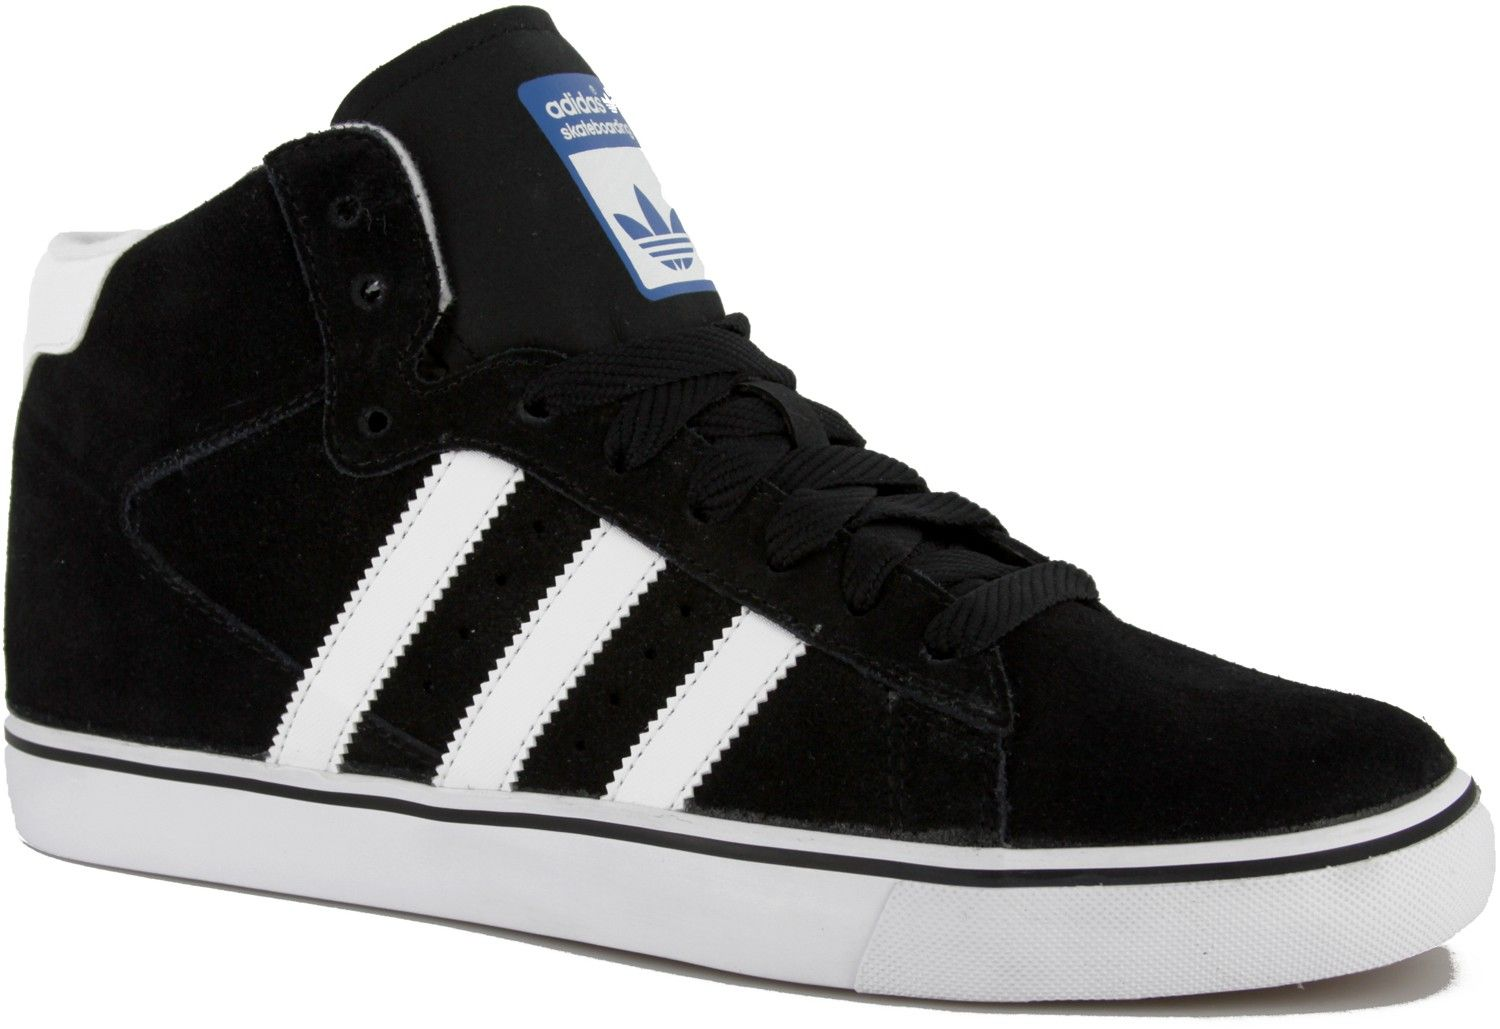 Adidas Skateboard High Shoes Green White